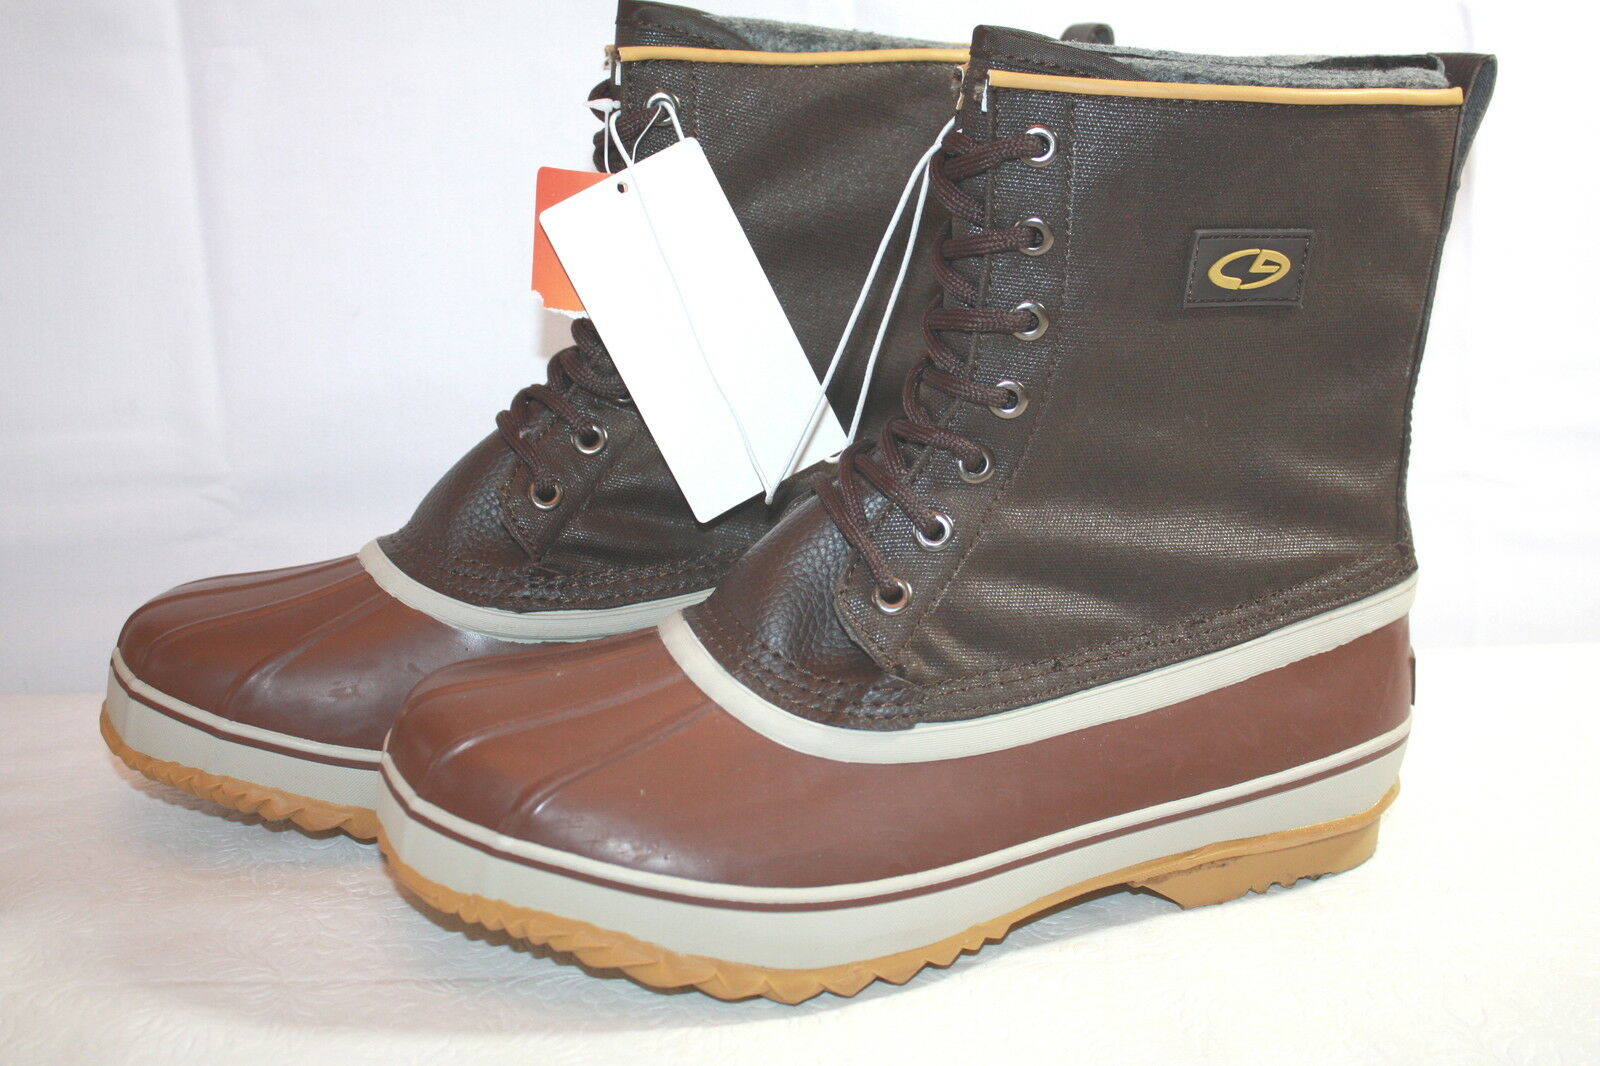 MENS DUCK WINTER WATERPROOF BOOTS  or CHAMPION available in 7 or  8  NEW  ss20 e3d3af